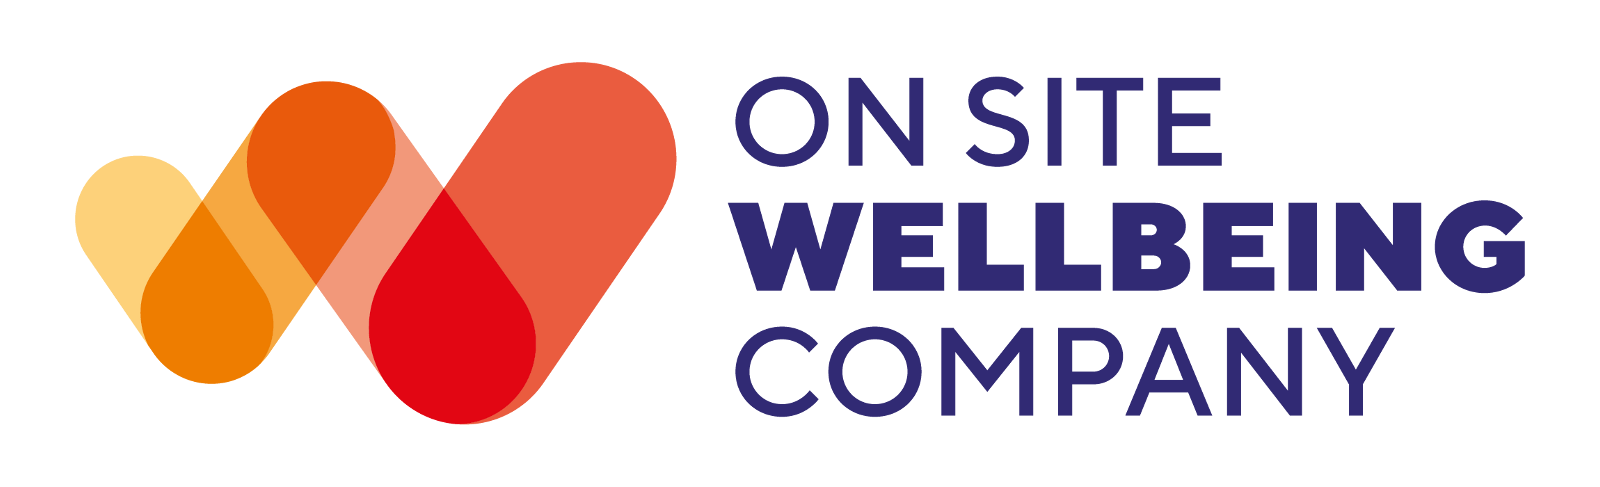 On Site Wellbeing